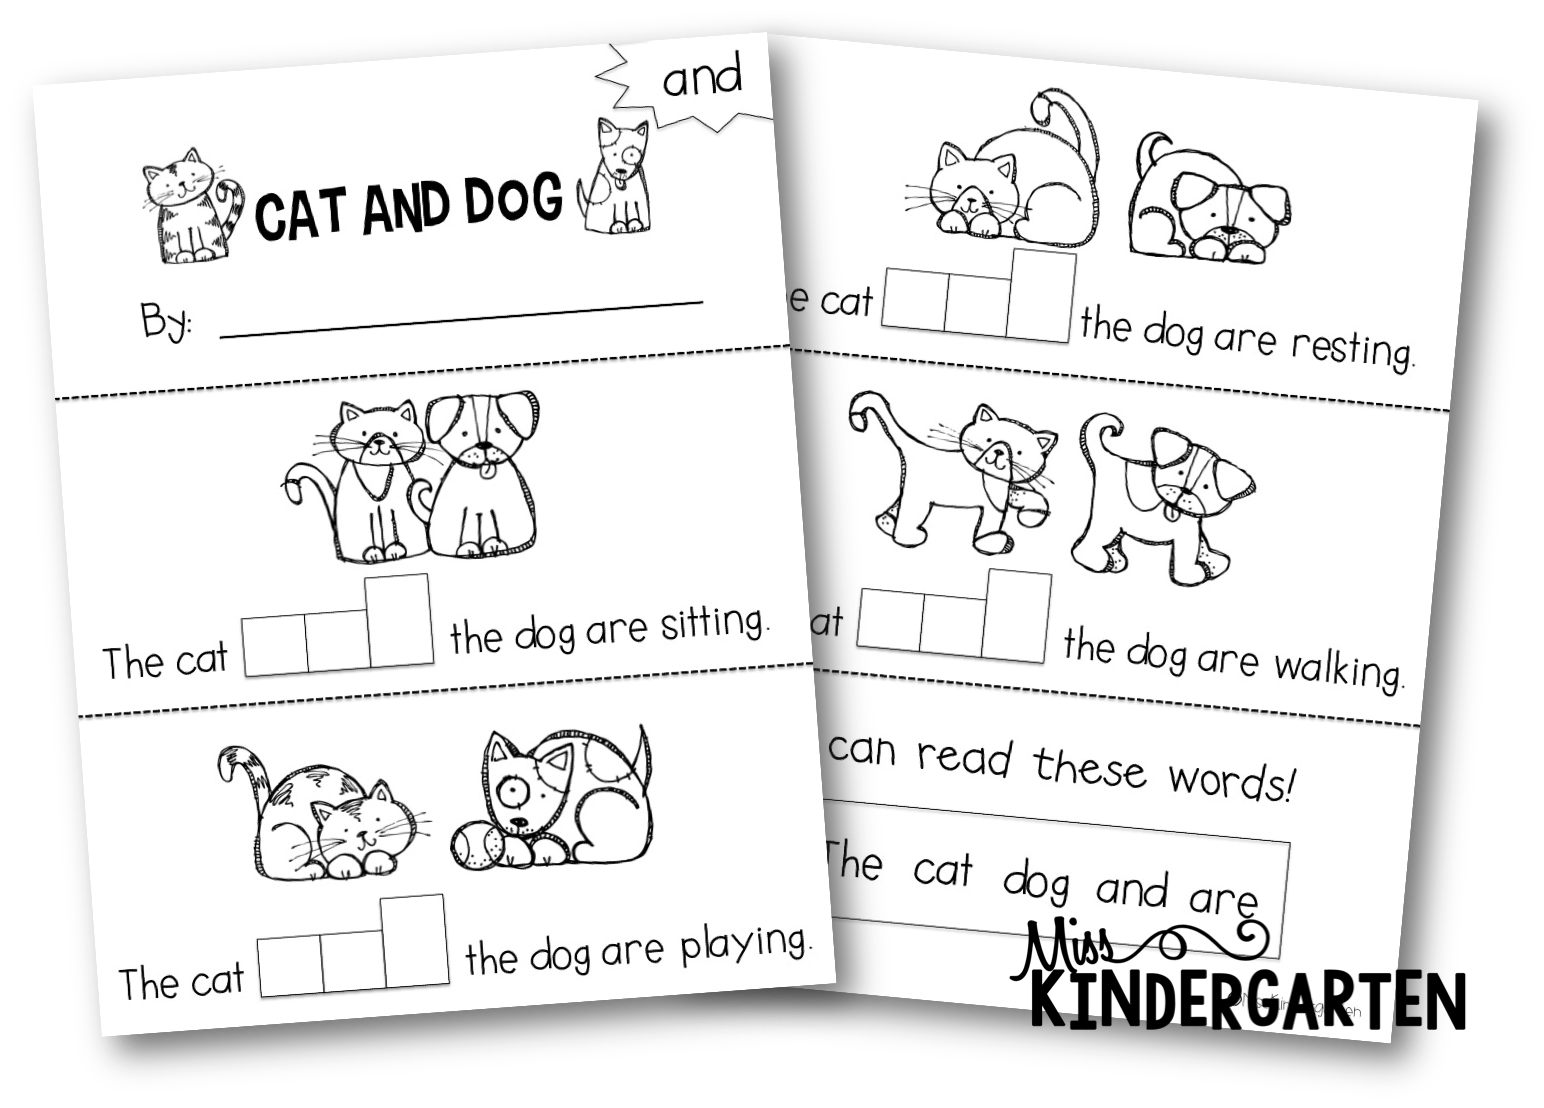 Remarkable image throughout sight word book printable